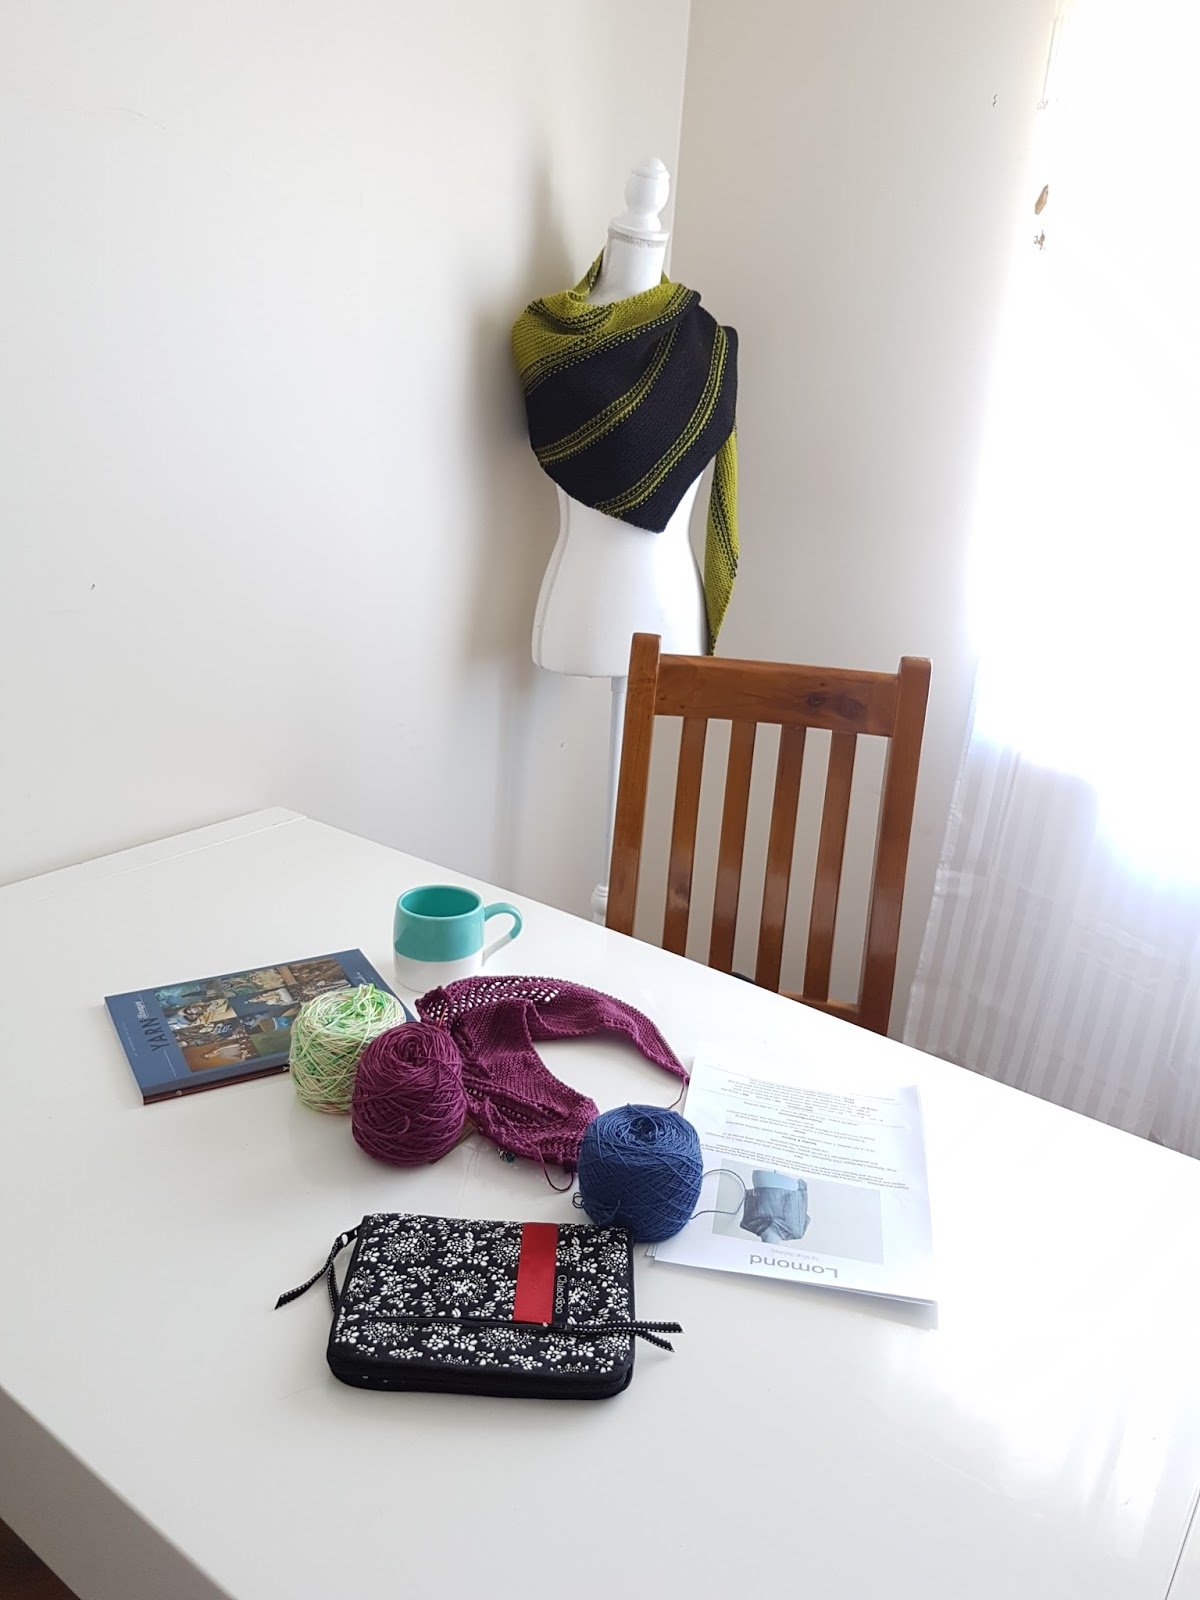 Iu0027ve Recently Gained A Craft Room! I Canu0027t Tell You How Excited I Am About  This! This Room In The House Has Seen So Many Makeovers Iu0027ve Almost Lost  Count, ...